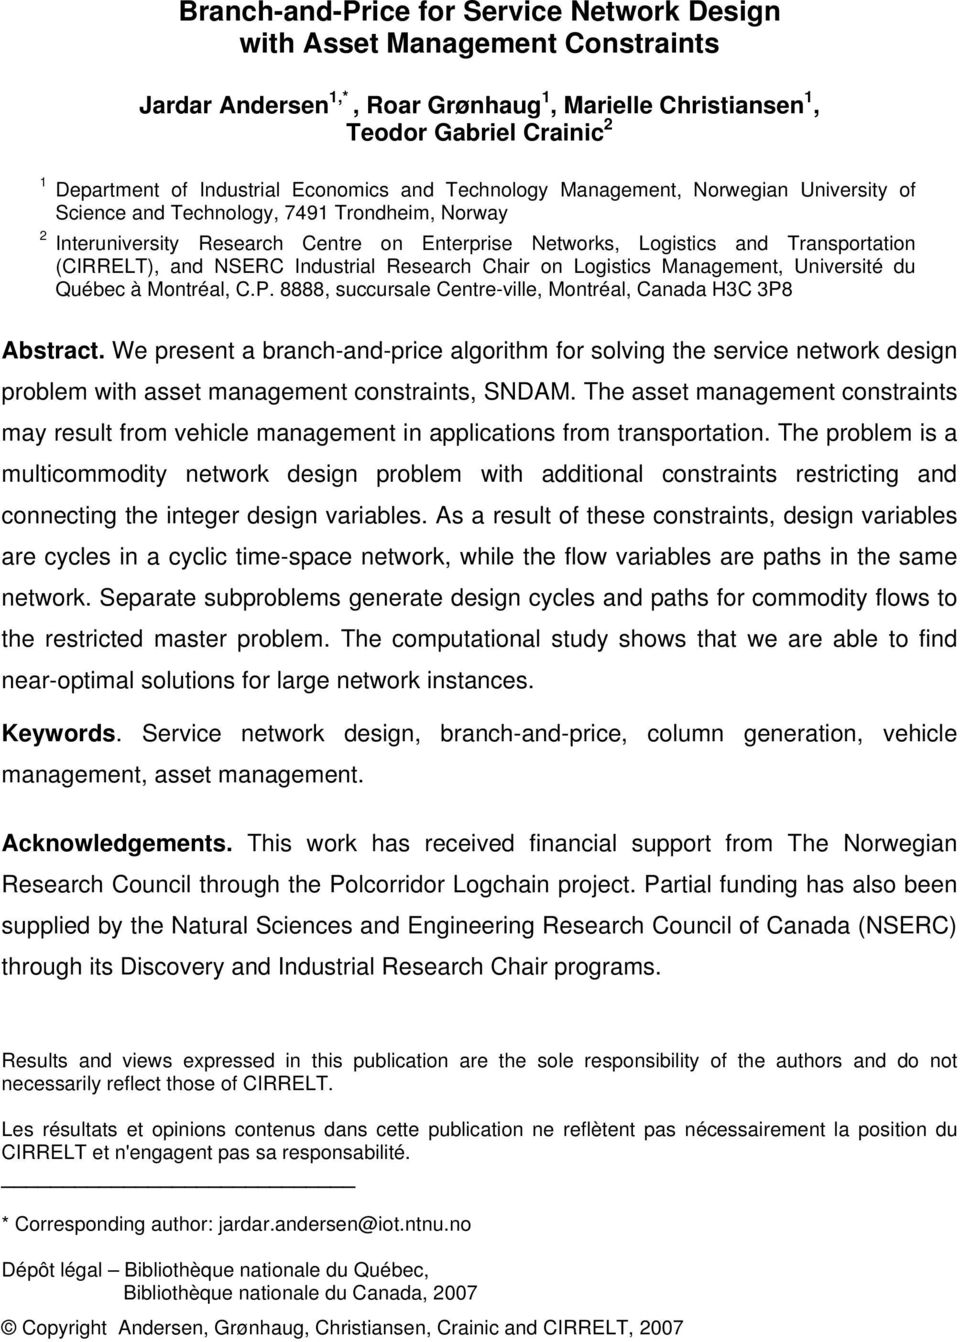 (CIRRELT), and NSERC Industrial Research Chair on Logistics Management, Université du Québec à Montréal, C.P. 8888, succursale Centre-ville, Montréal, Canada H3C 3P8 Abstract.